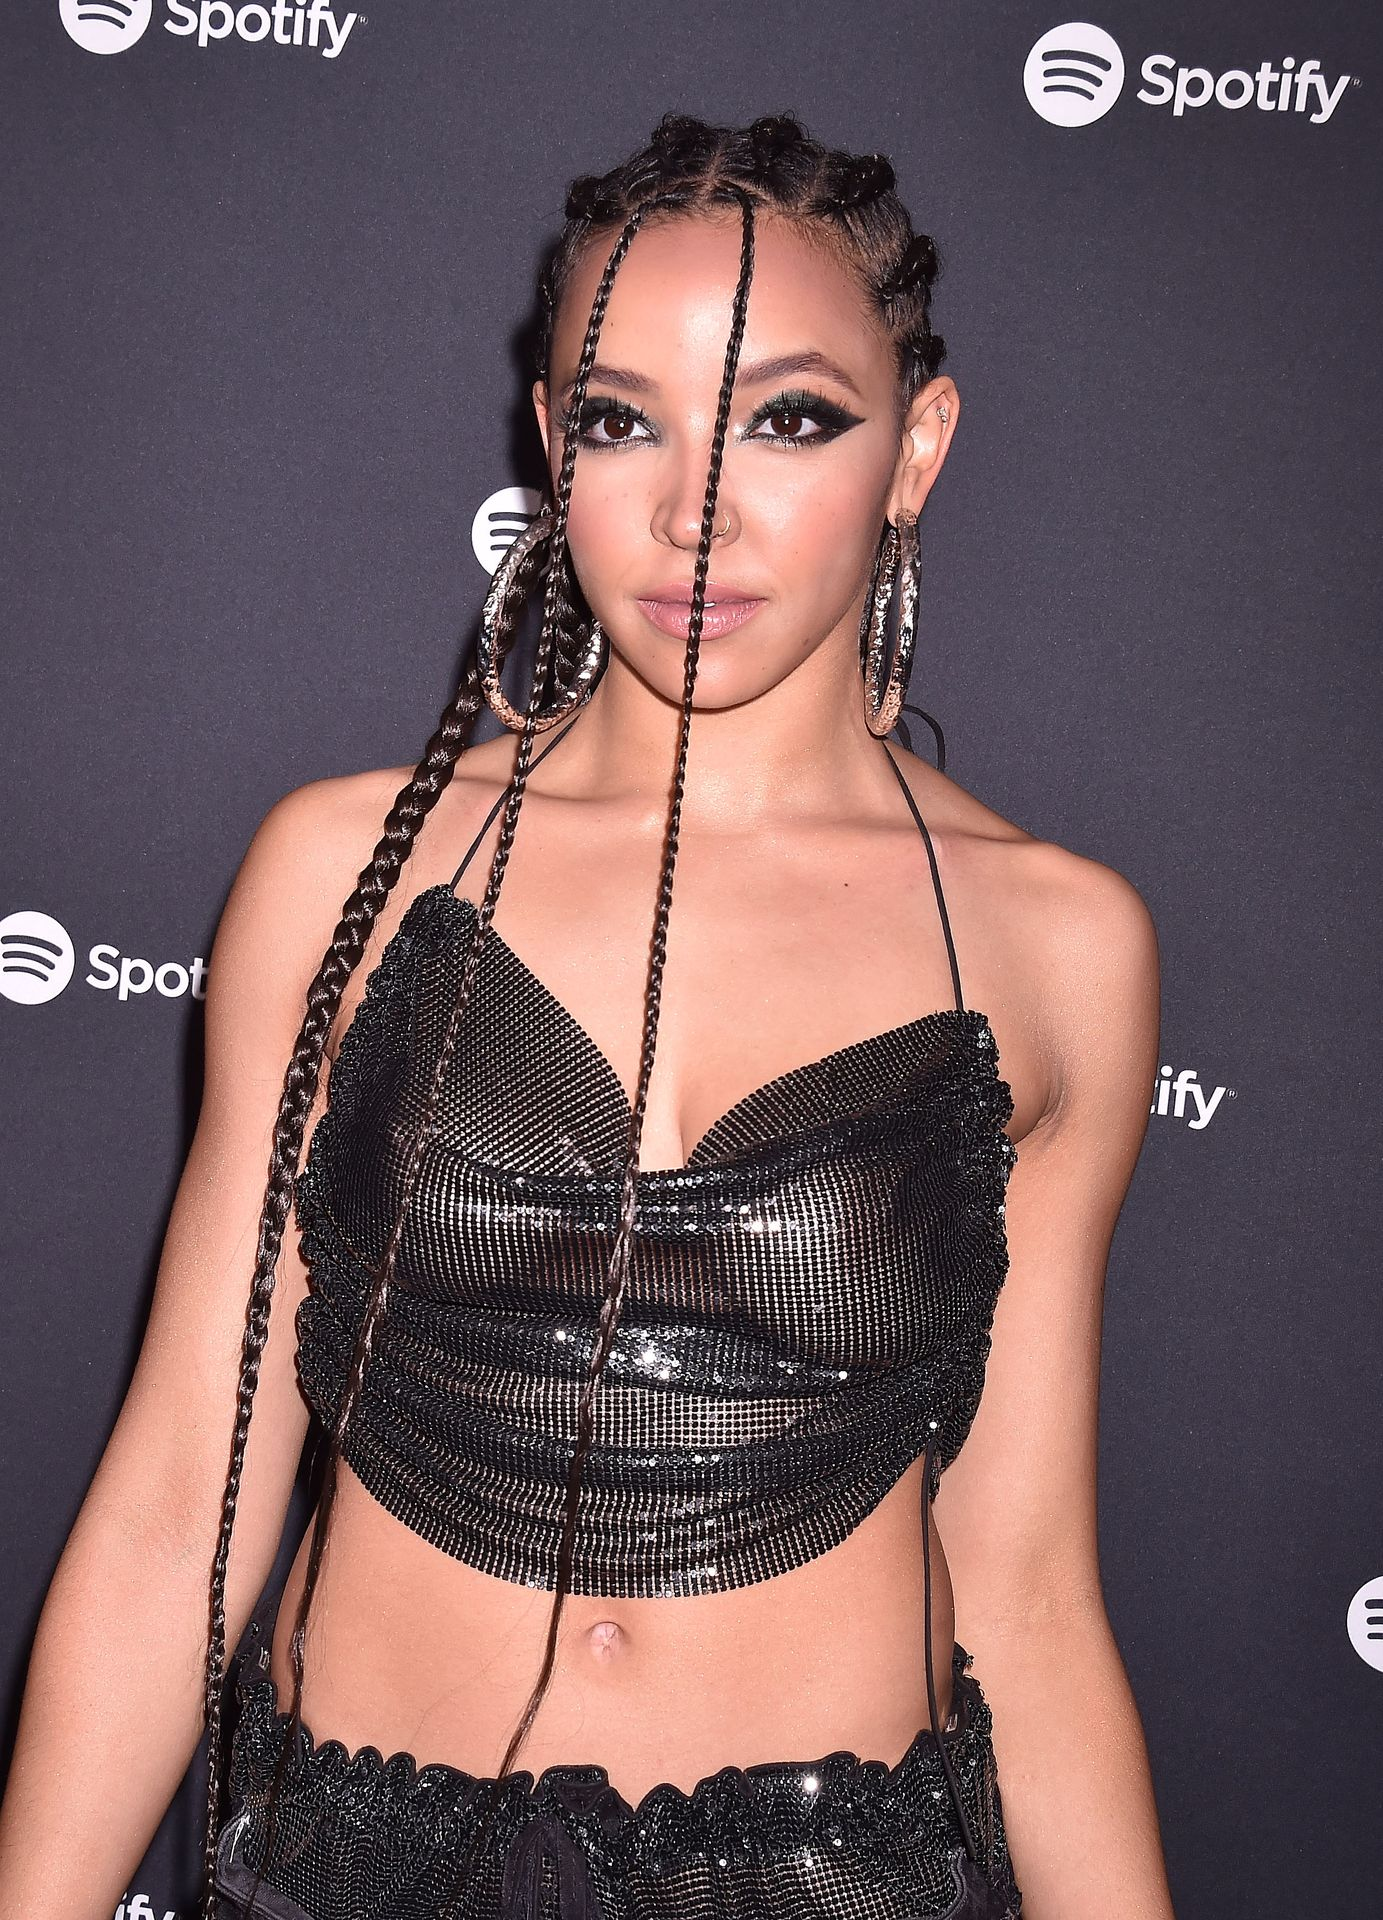 Tinashe Flaunts Her Tits At The Spotify Best New Artist Party 0020